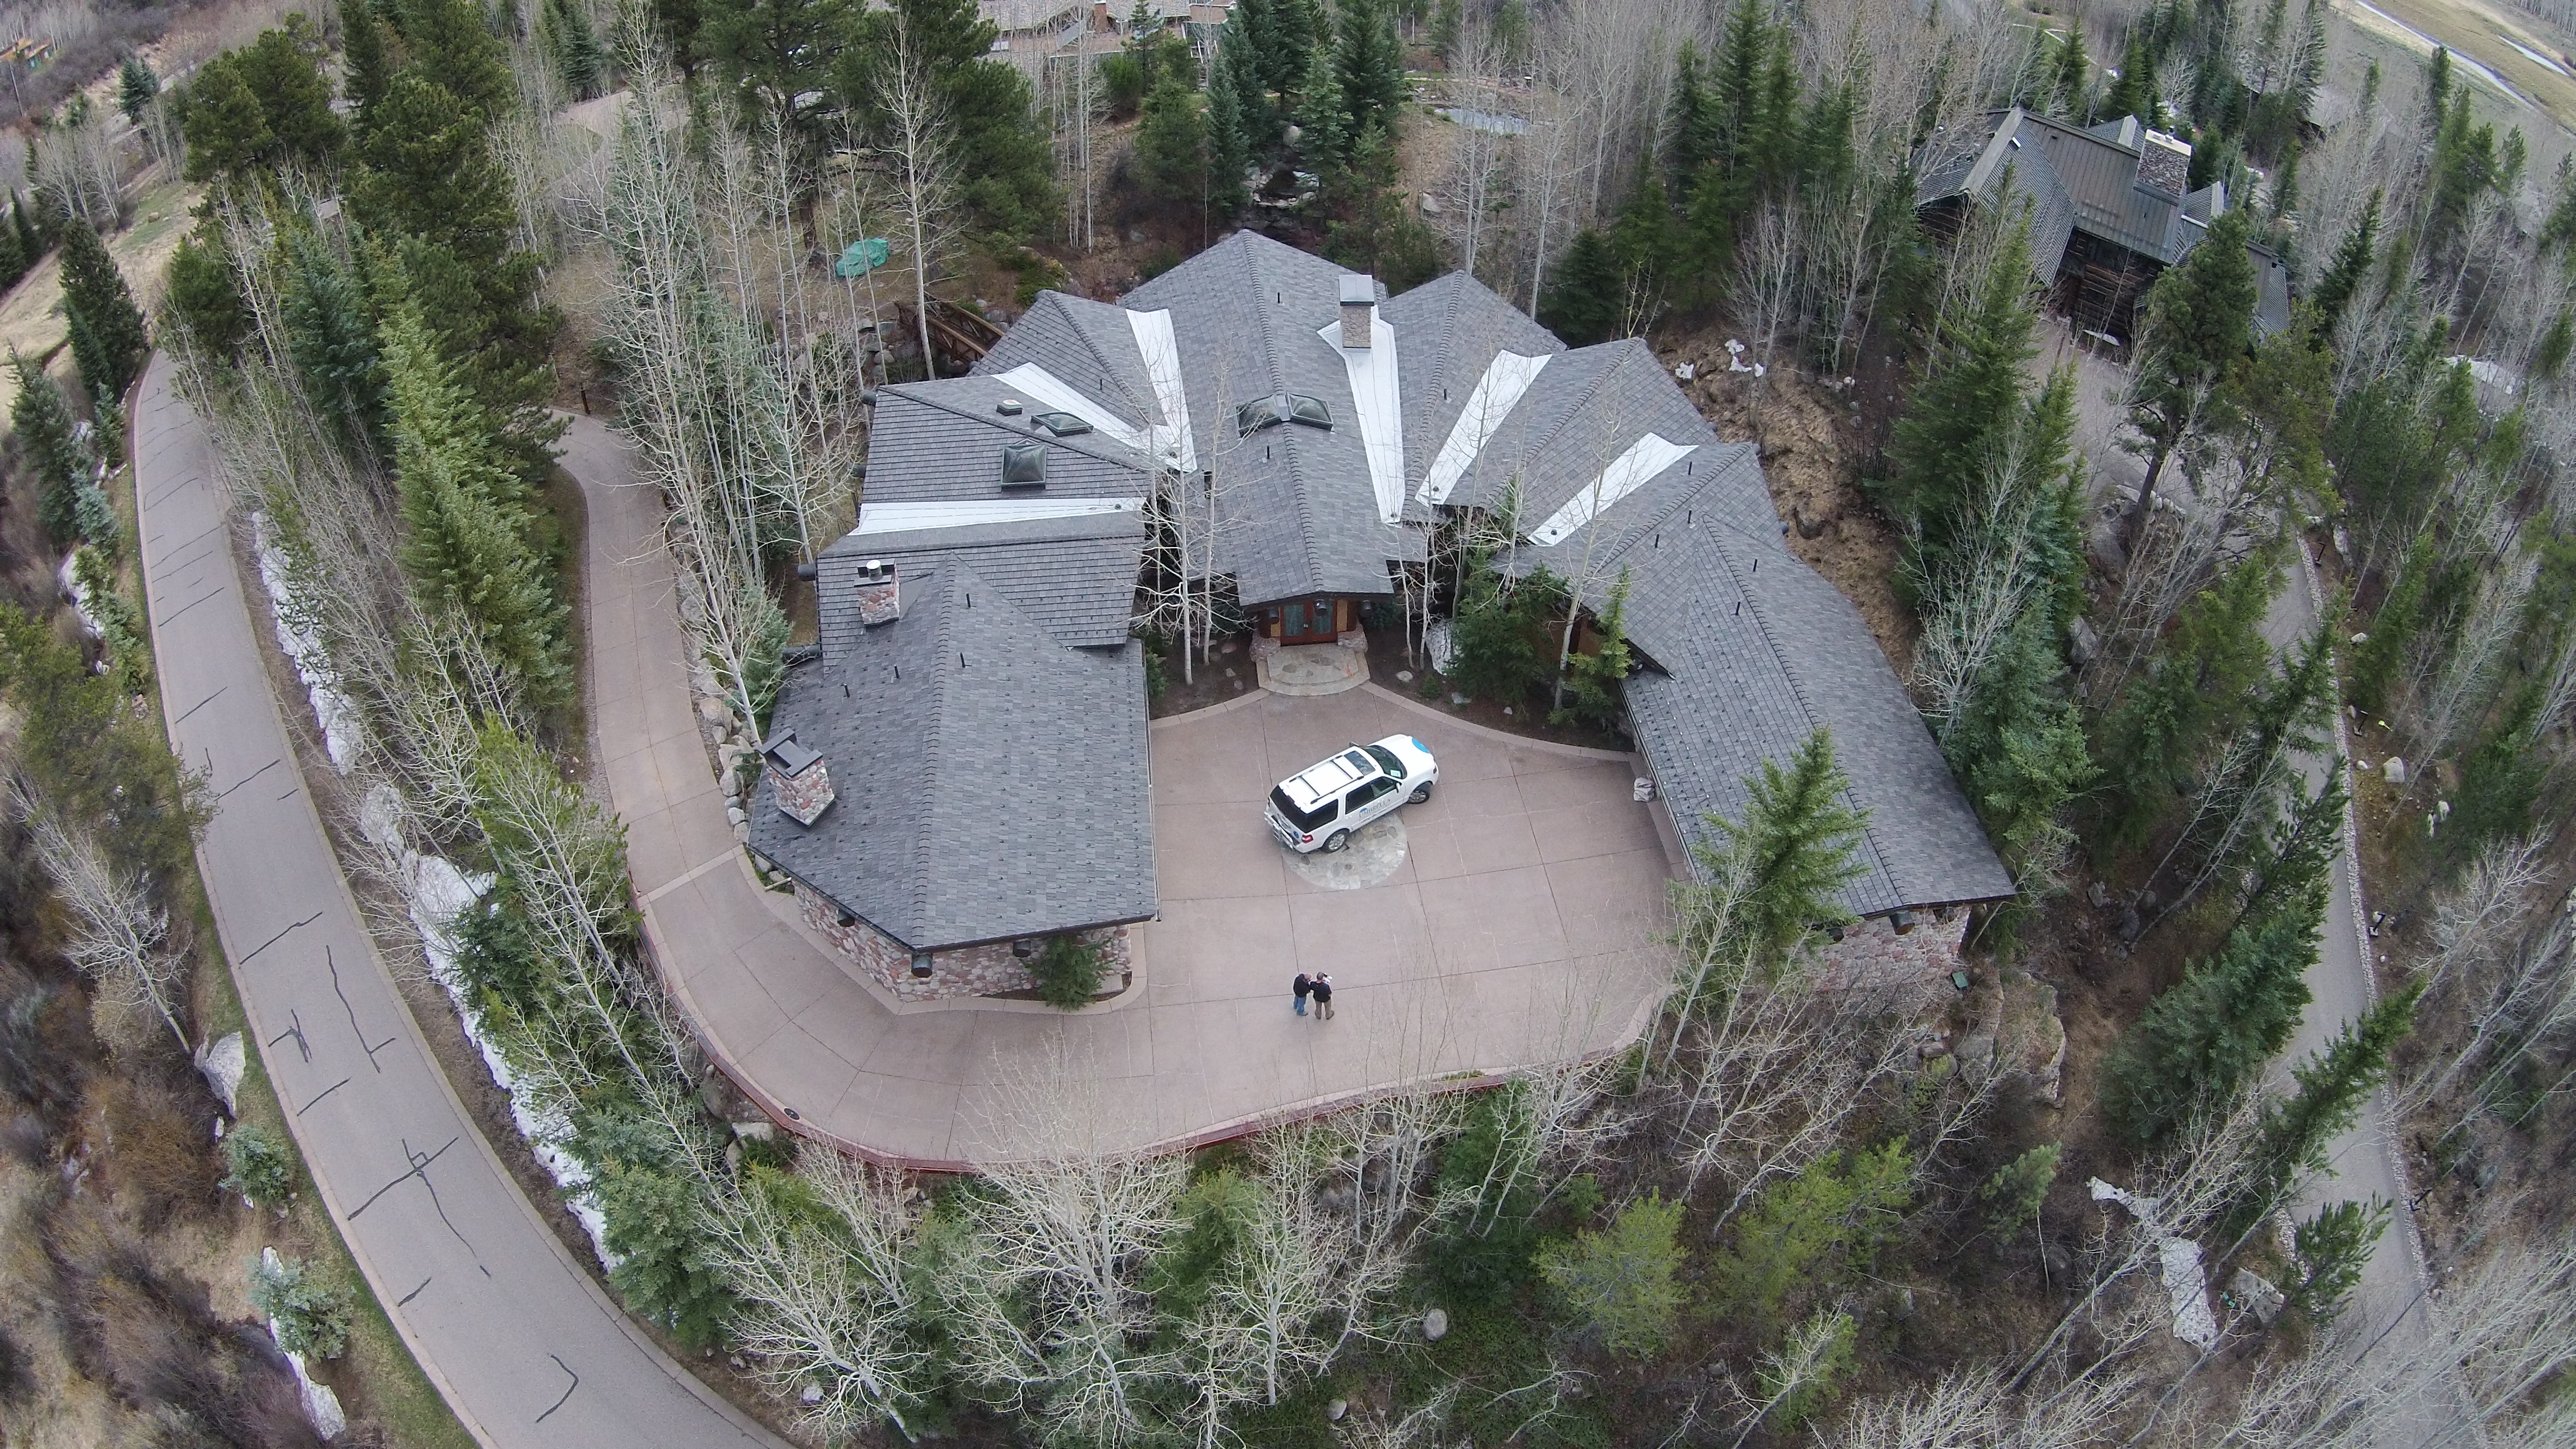 Featured project aspen co davinci roofscapes for Davinci roofscapes llc